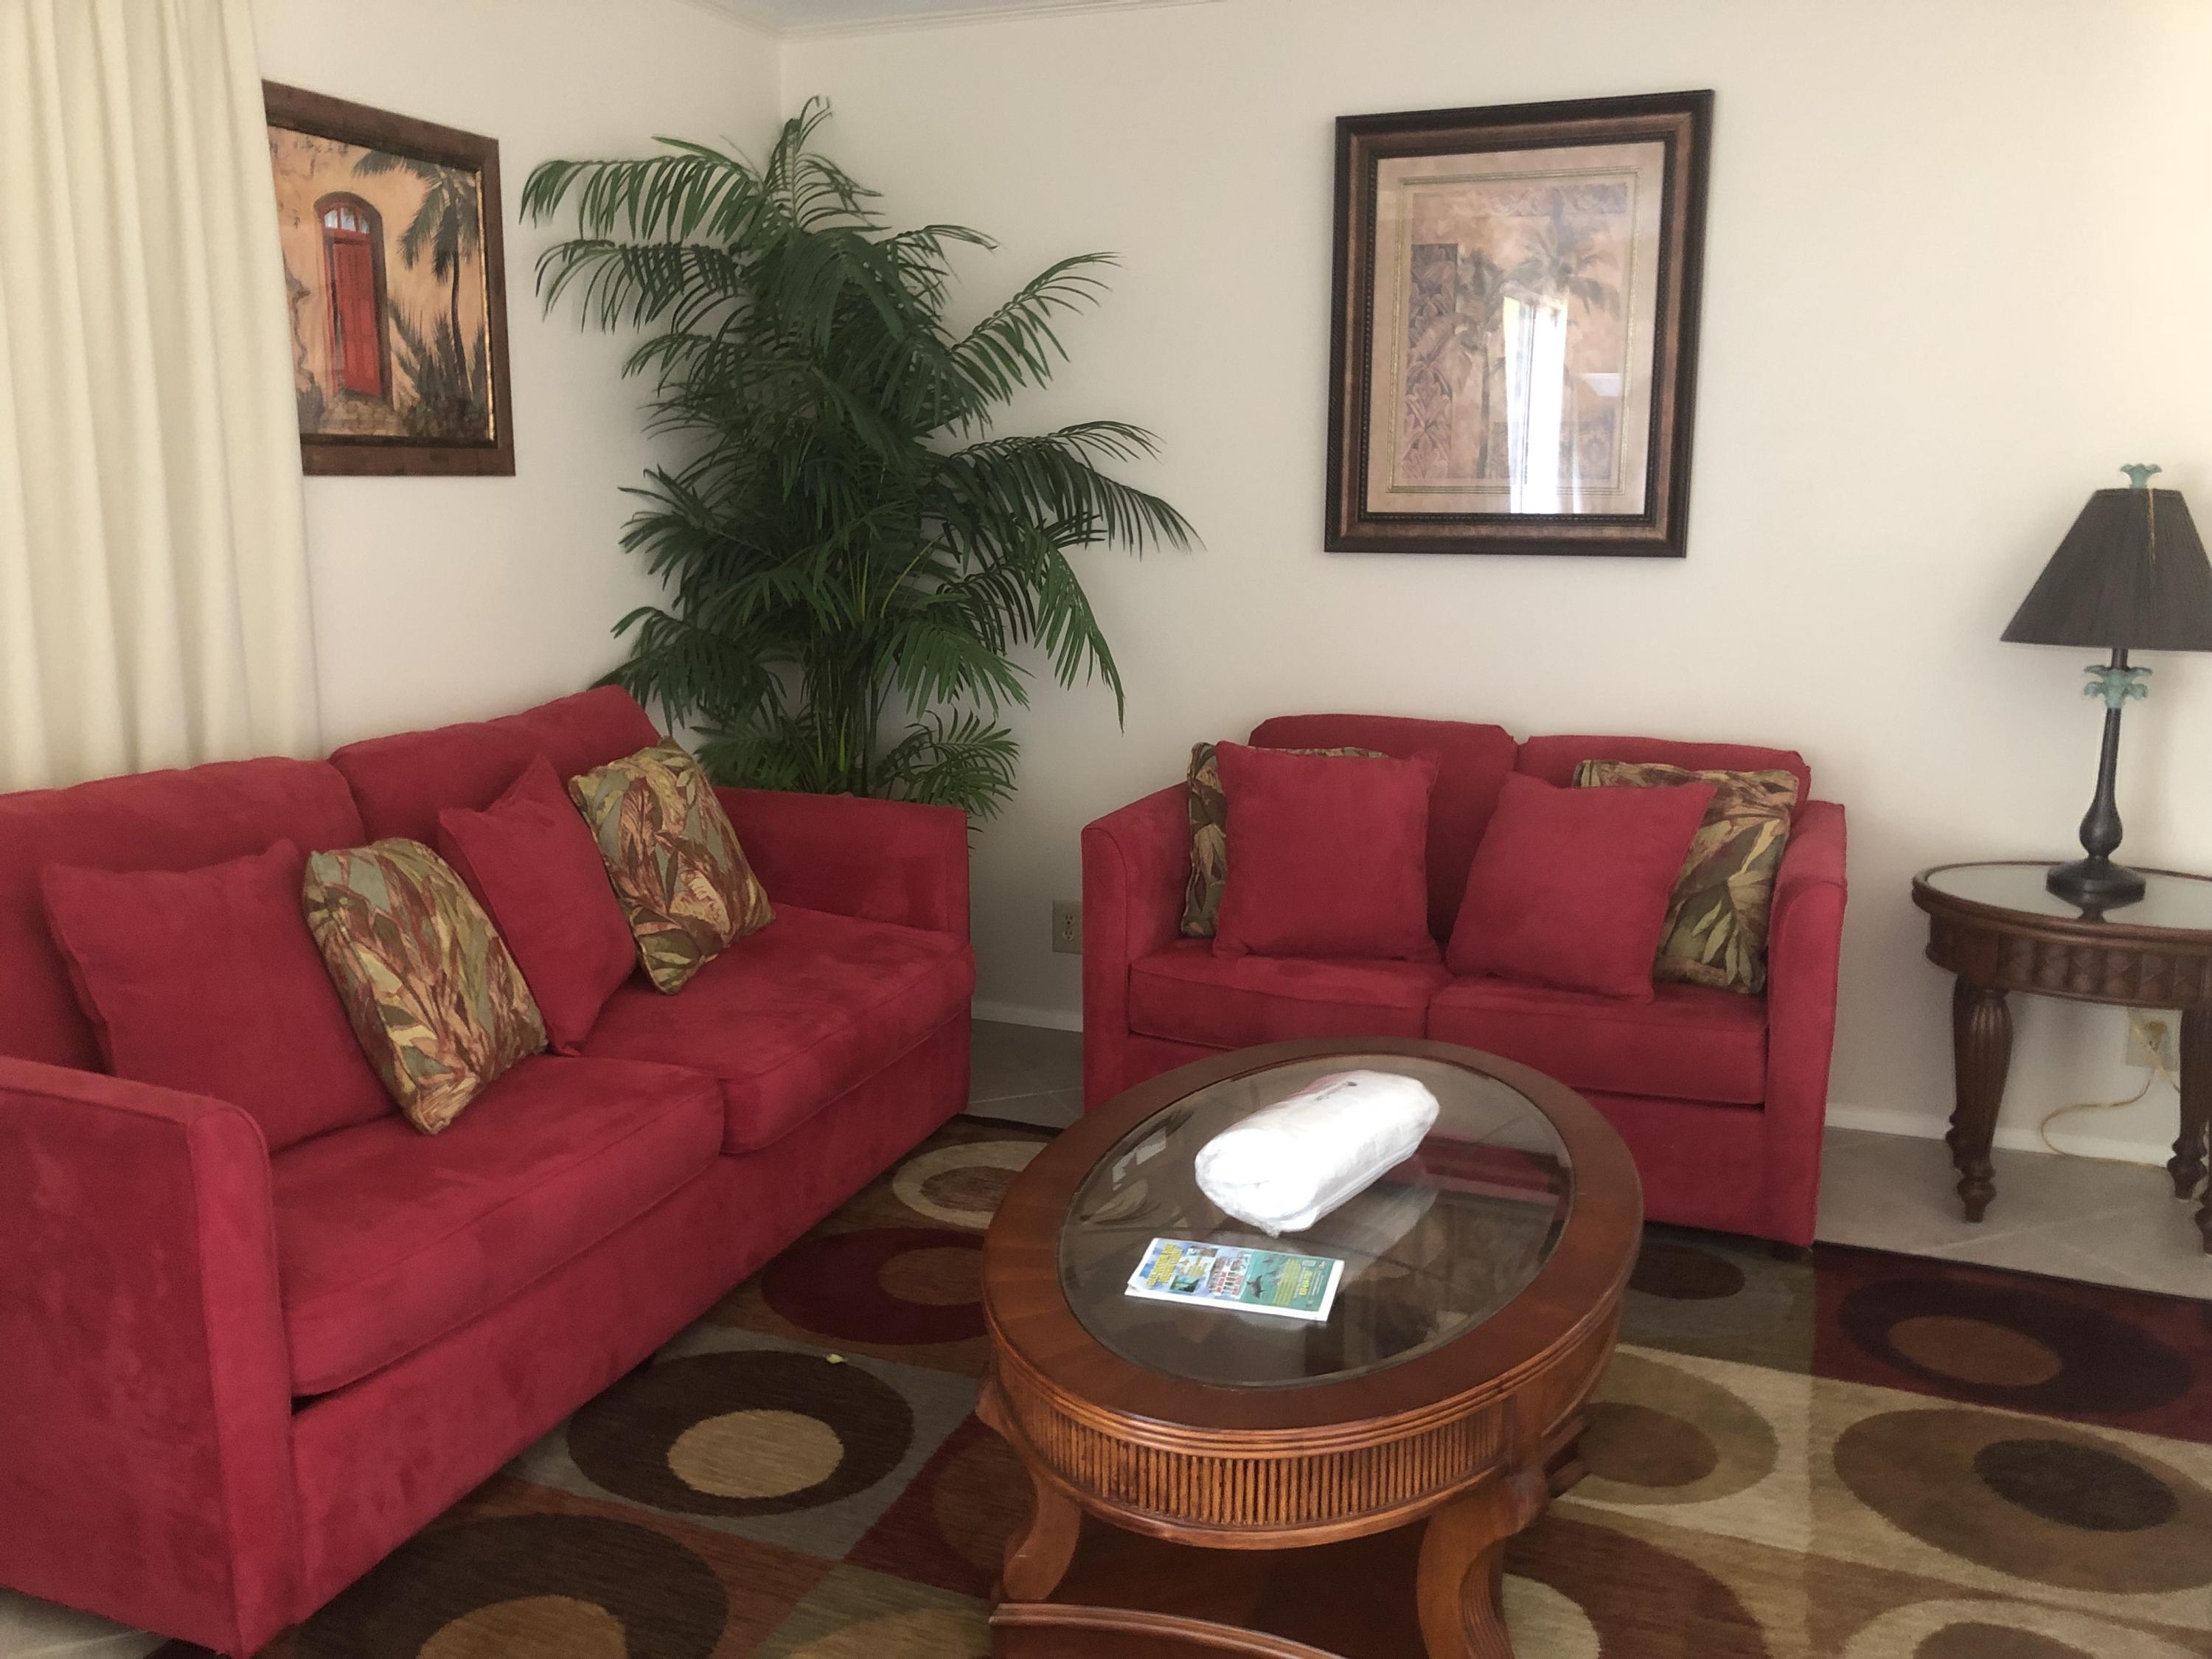 Updated one bedroom, second level, overlooking the golf course and pool area.  Sandpiper Cove is located on 43 acres in the heart of Destin with 1100' of beach front and harbor & canal access.  Popular 9 hole par 3 golf course, 5 pools (2 heated in winter) 3 hot spas, 6 tennis courts.  Canal docking by reservation as available, boat slips on harbor as available for annual lease.  On site boat launch.  Seasonal beach service and snack bar.  Gourmet harbor front  Louisiana Lagniappe Restaurant on-site too!!